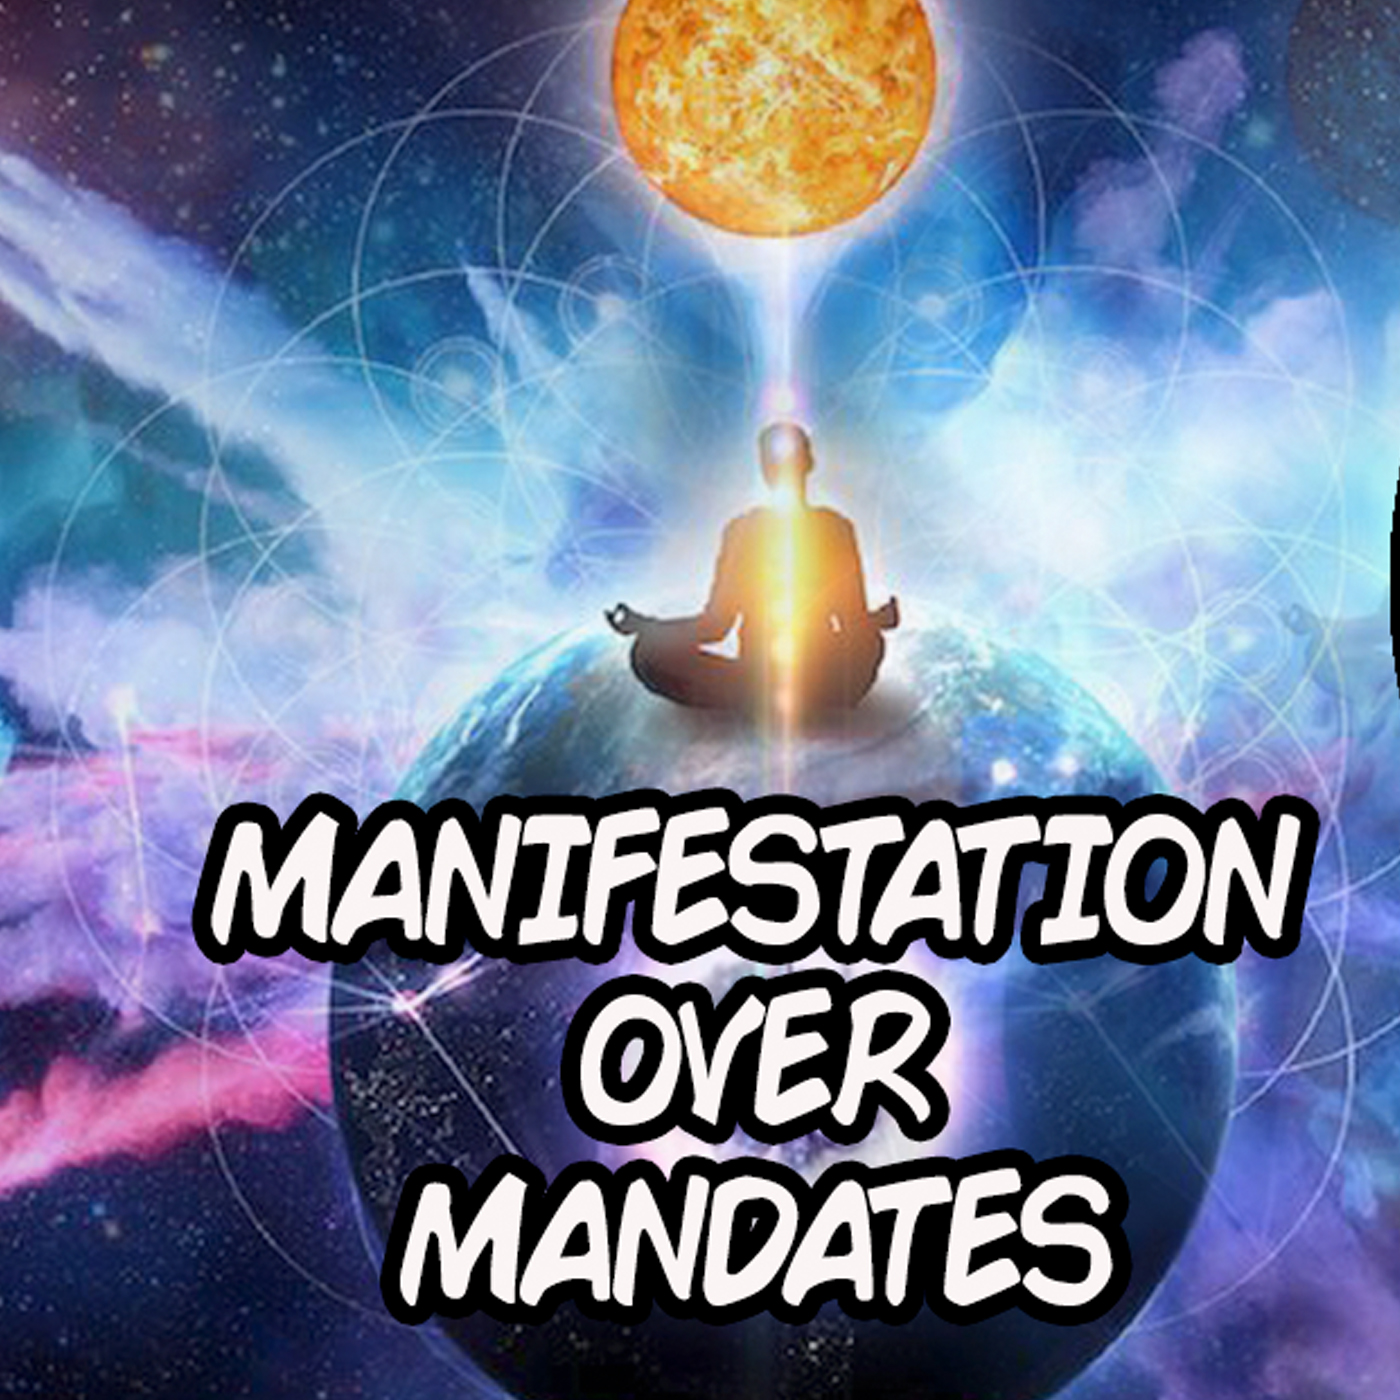 LFN #102 - Lockdowns and Mandates Are on the Rise, Here's How to Take Back Control of Your Life